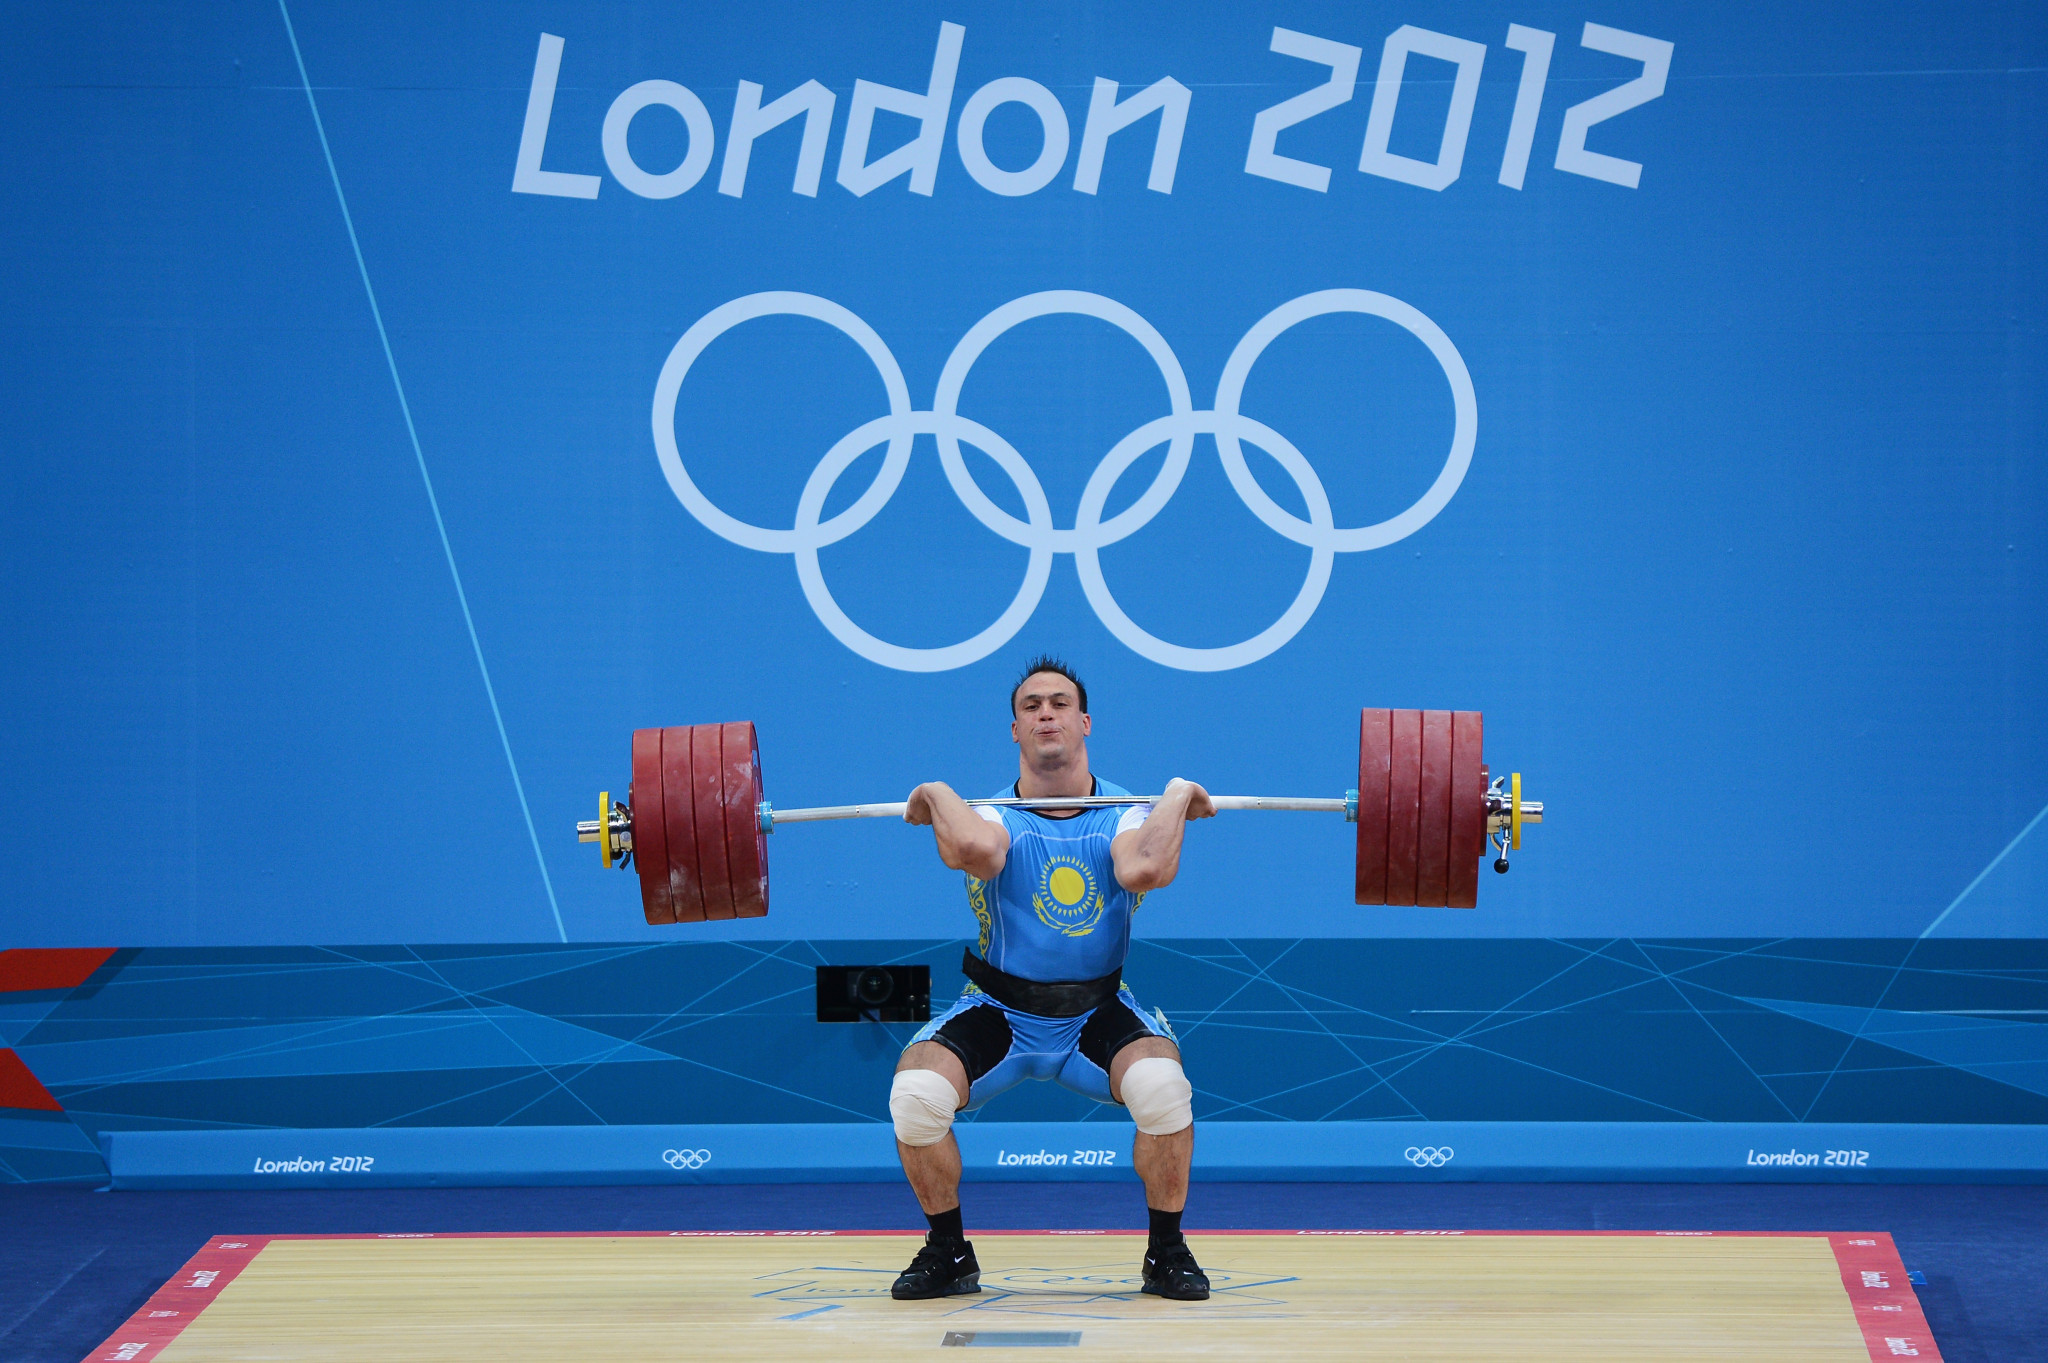 Ilya Ilyin was among weightlifters from Kazakhstan who produced 10 positive tests after their samples were re-analysed, leading to him being stripped of the Olympic gold medals he won at Beijing 2008 and London 2012 ©Getty Images